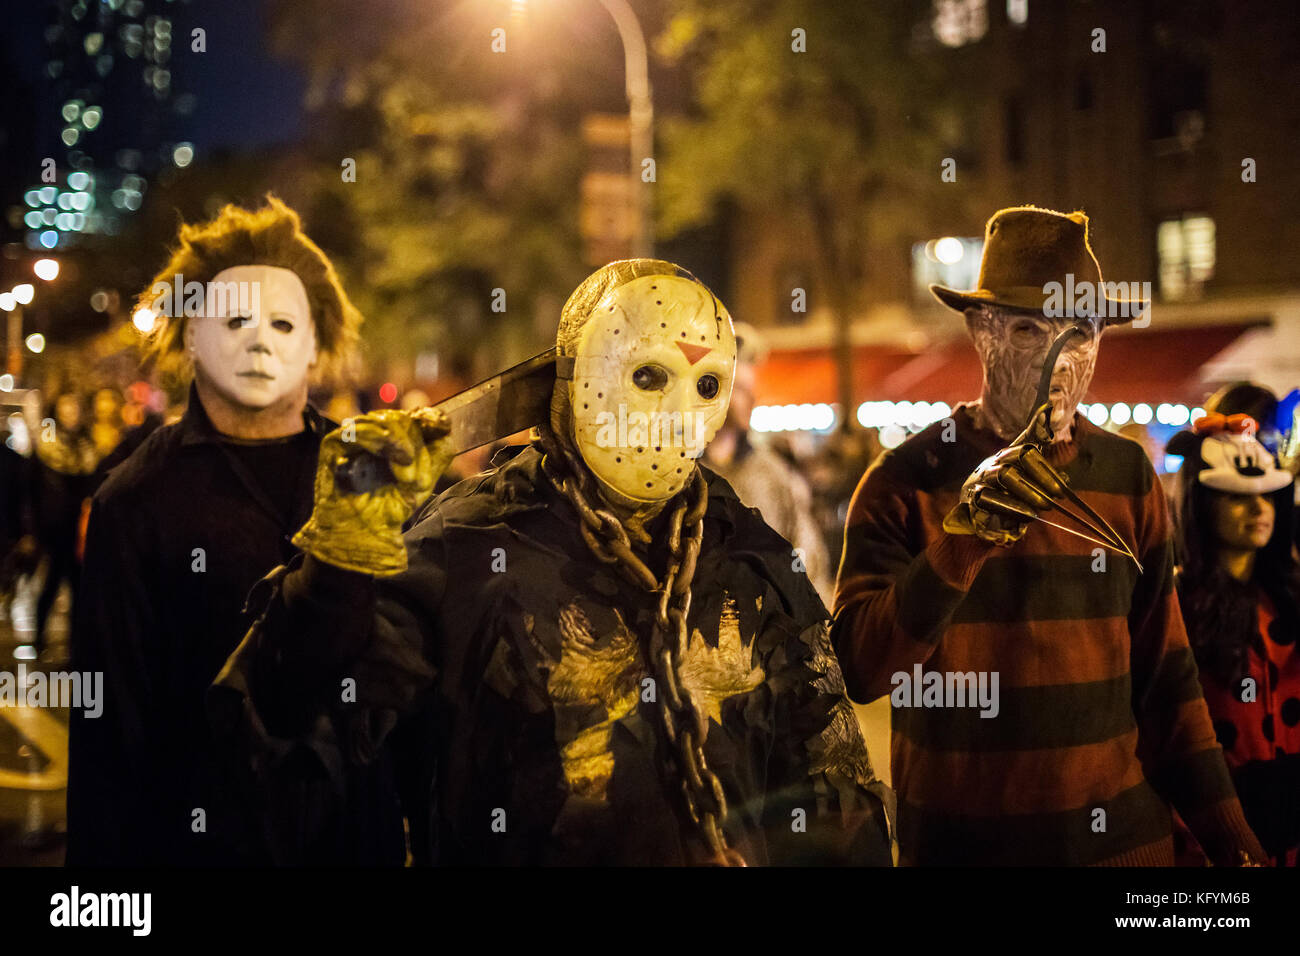 halloween costumes, michael myers, friday the 13, freddy krueger